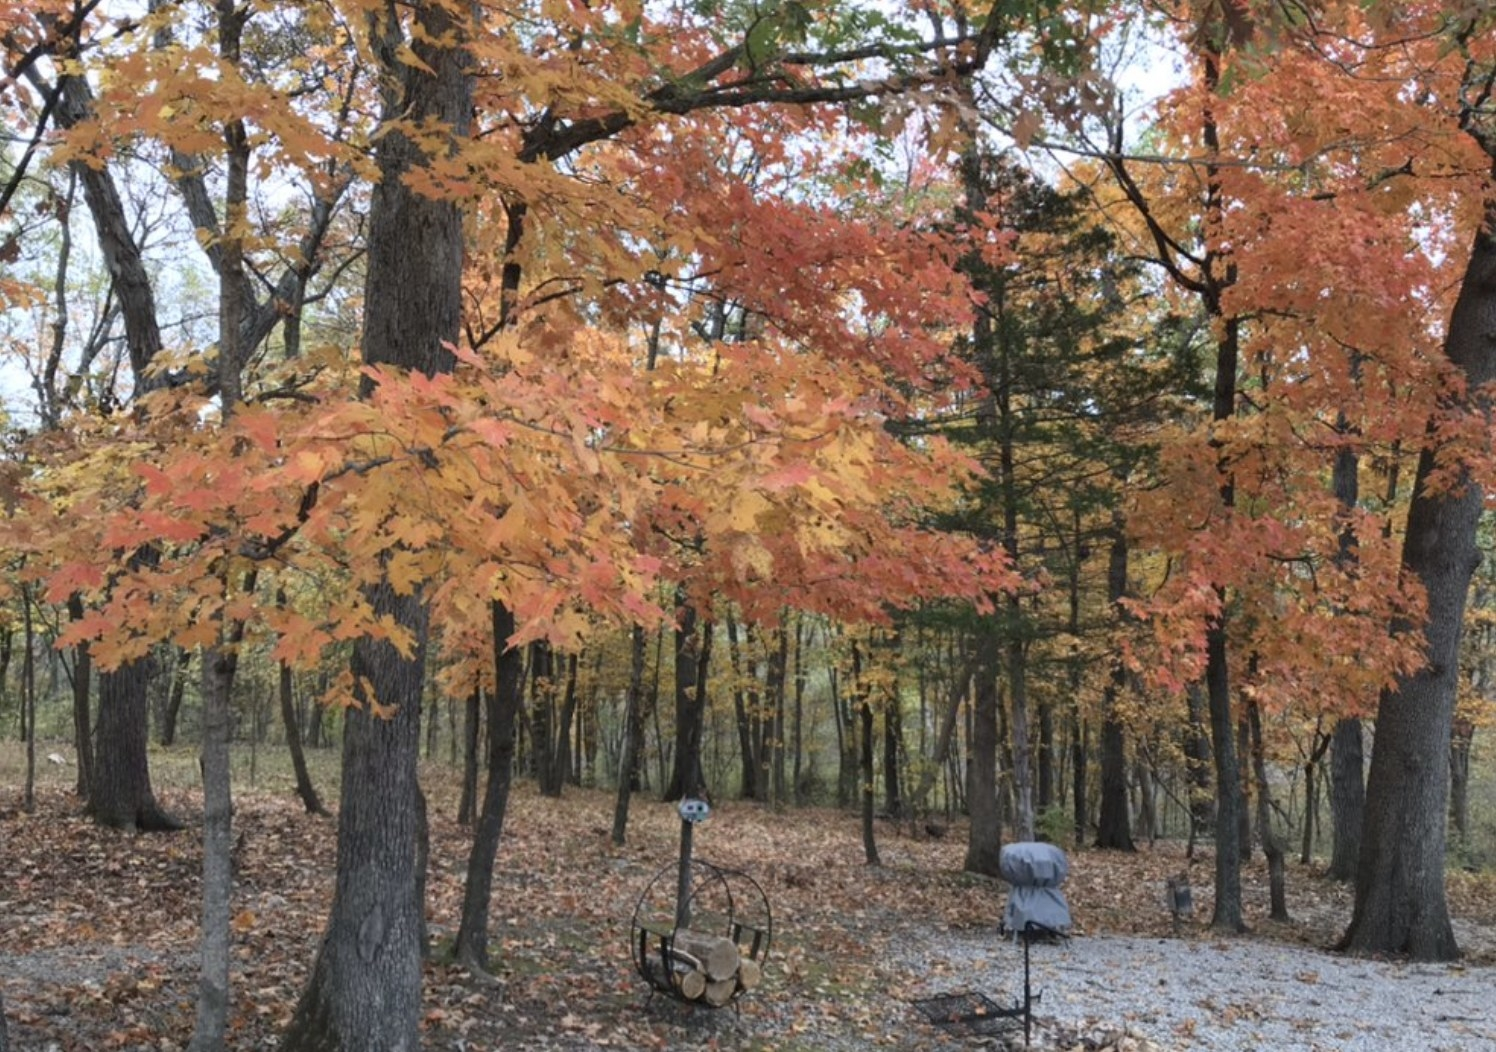 Campground in the fall